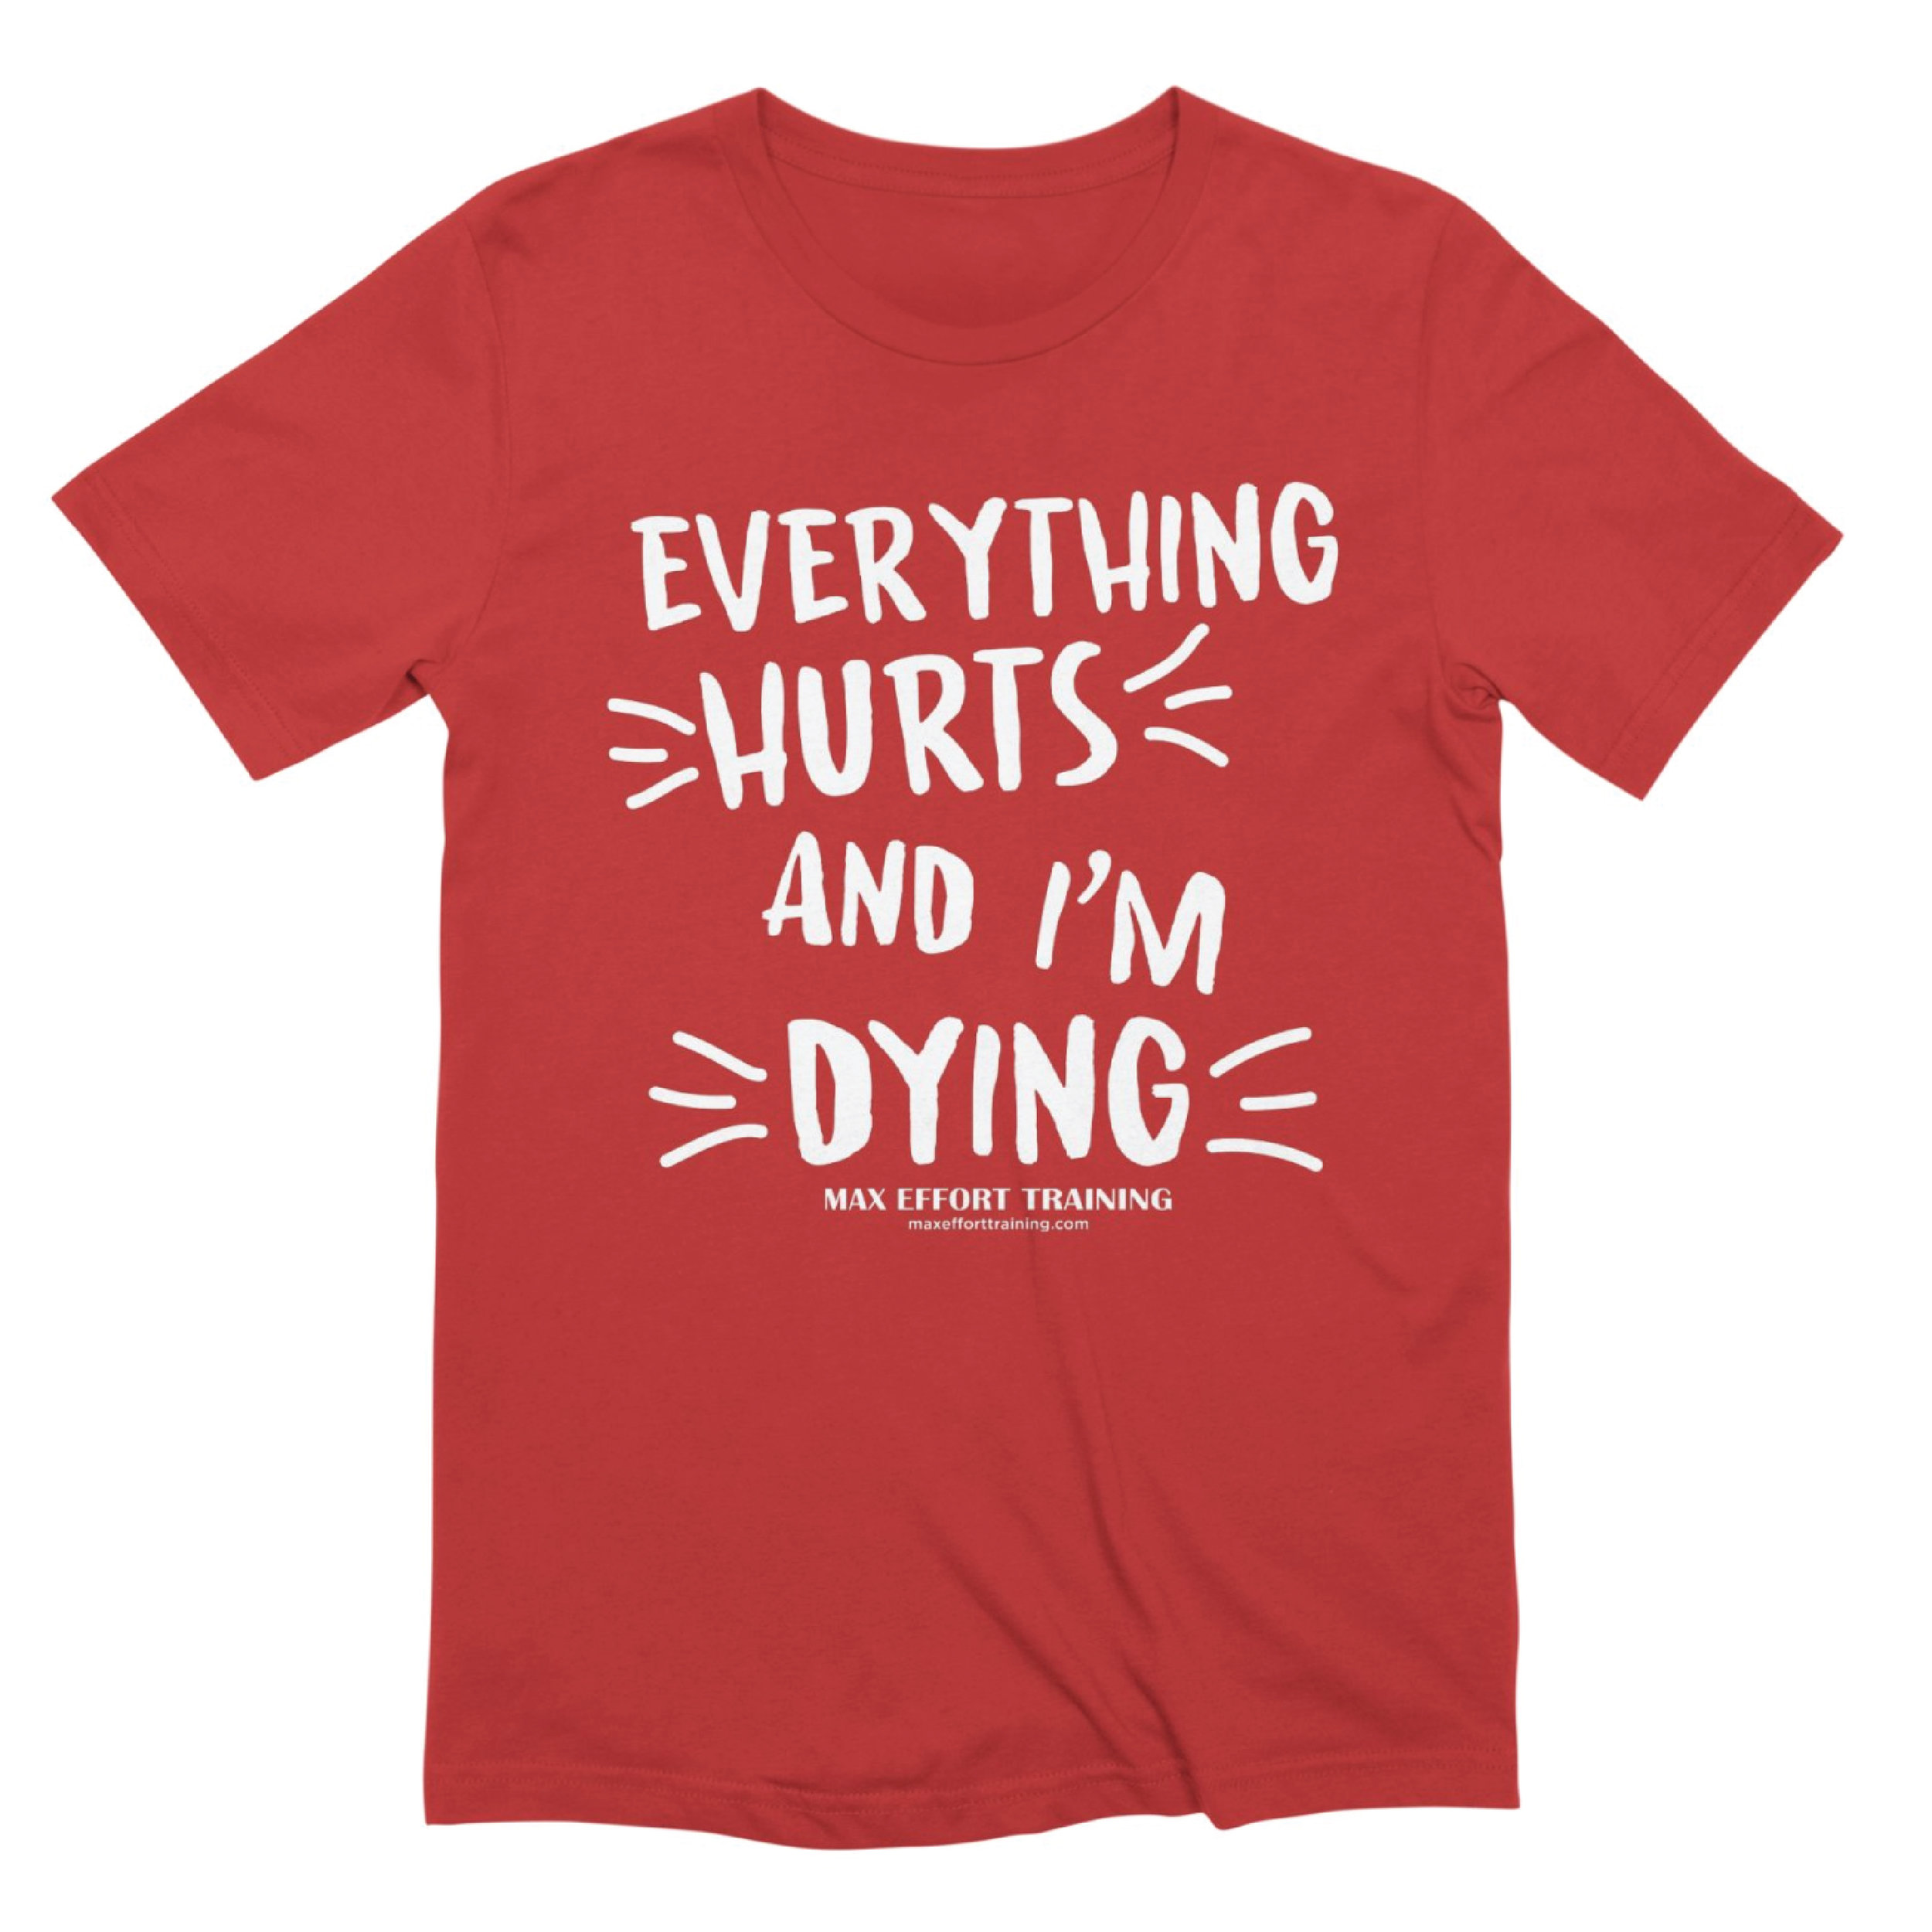 Threadless Shirts-01.jpg